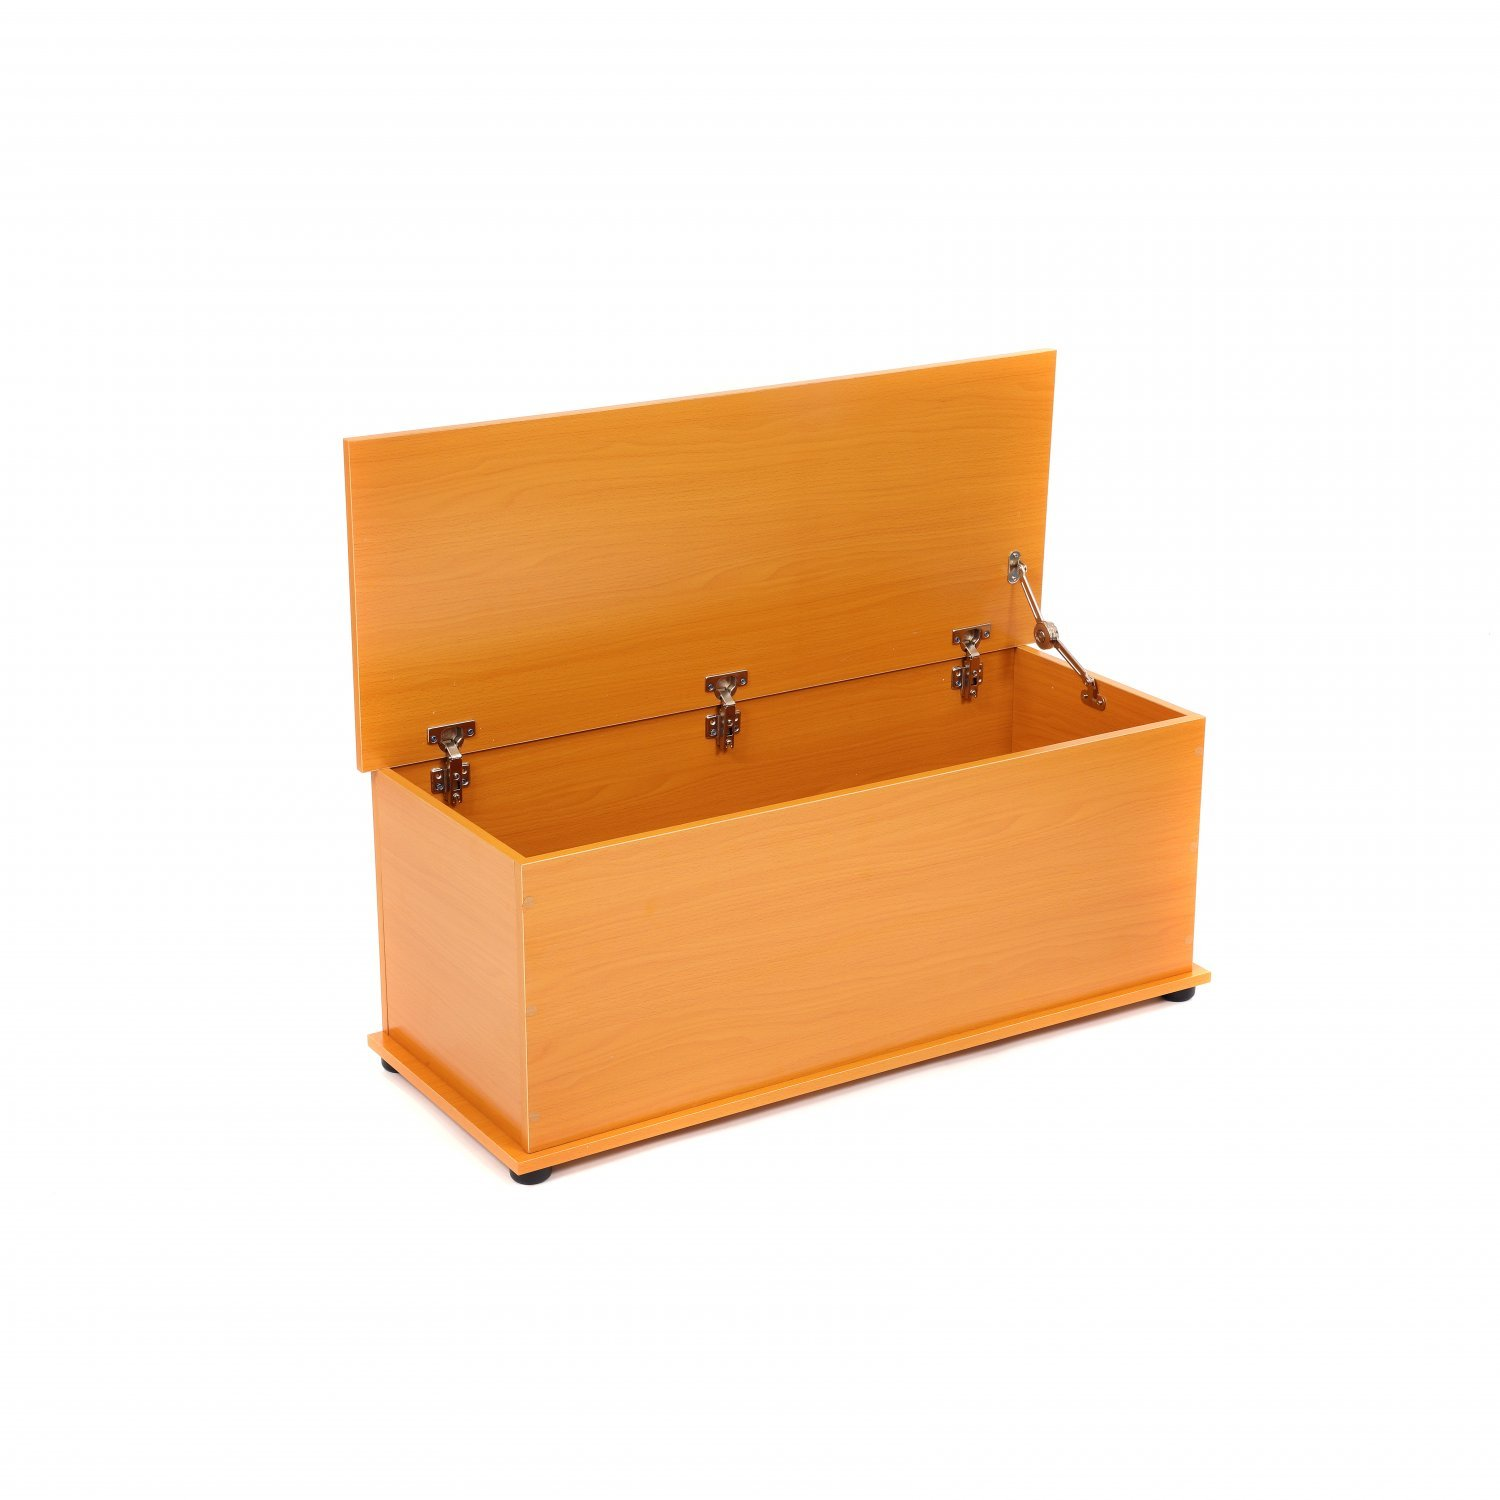 Beech Wooden Storage Chest Ottoman Blanket Box Toy Chest Trunk